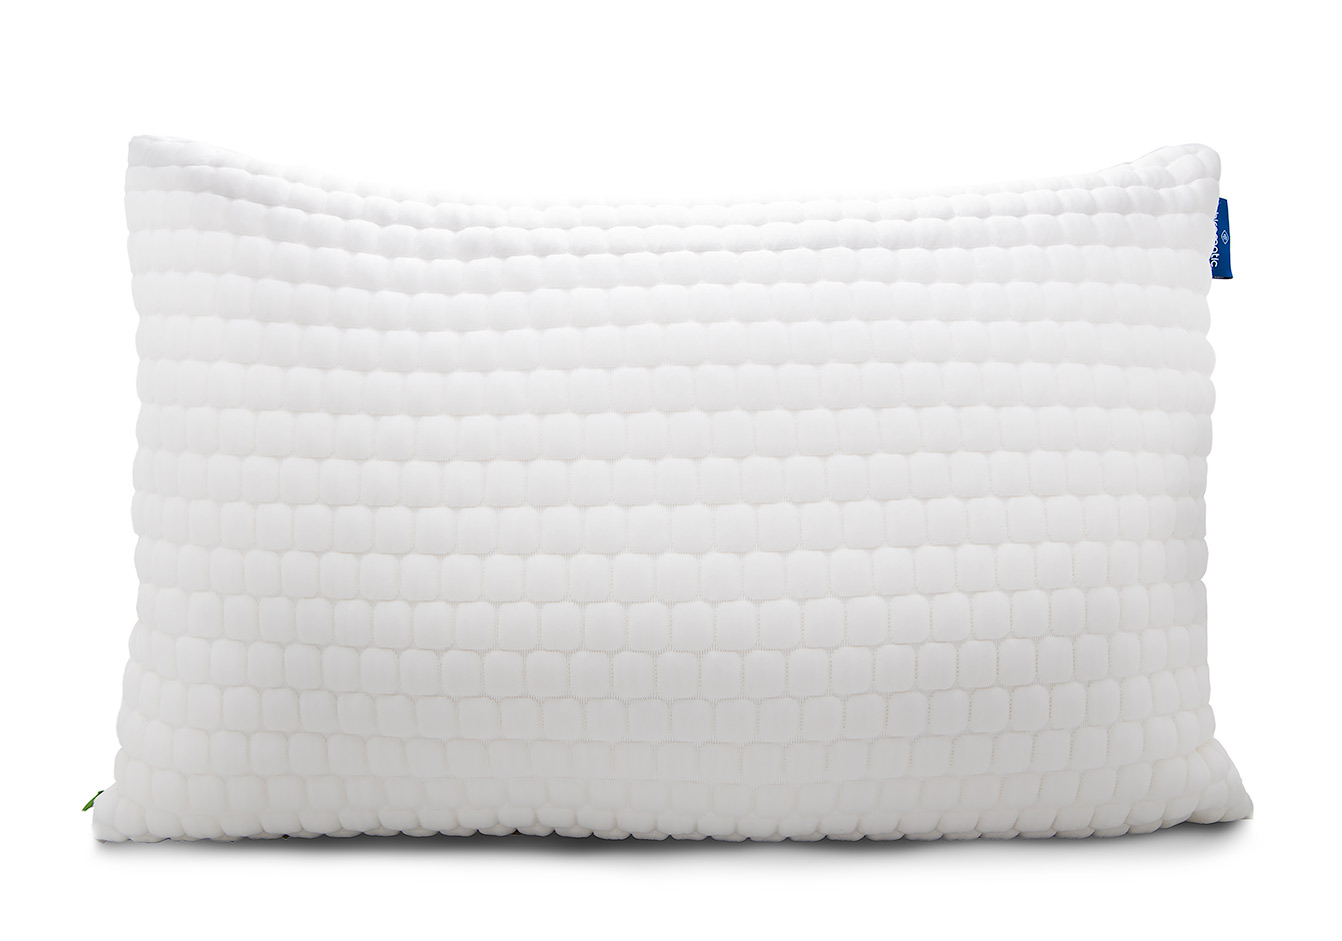 Chiromatic Pillow